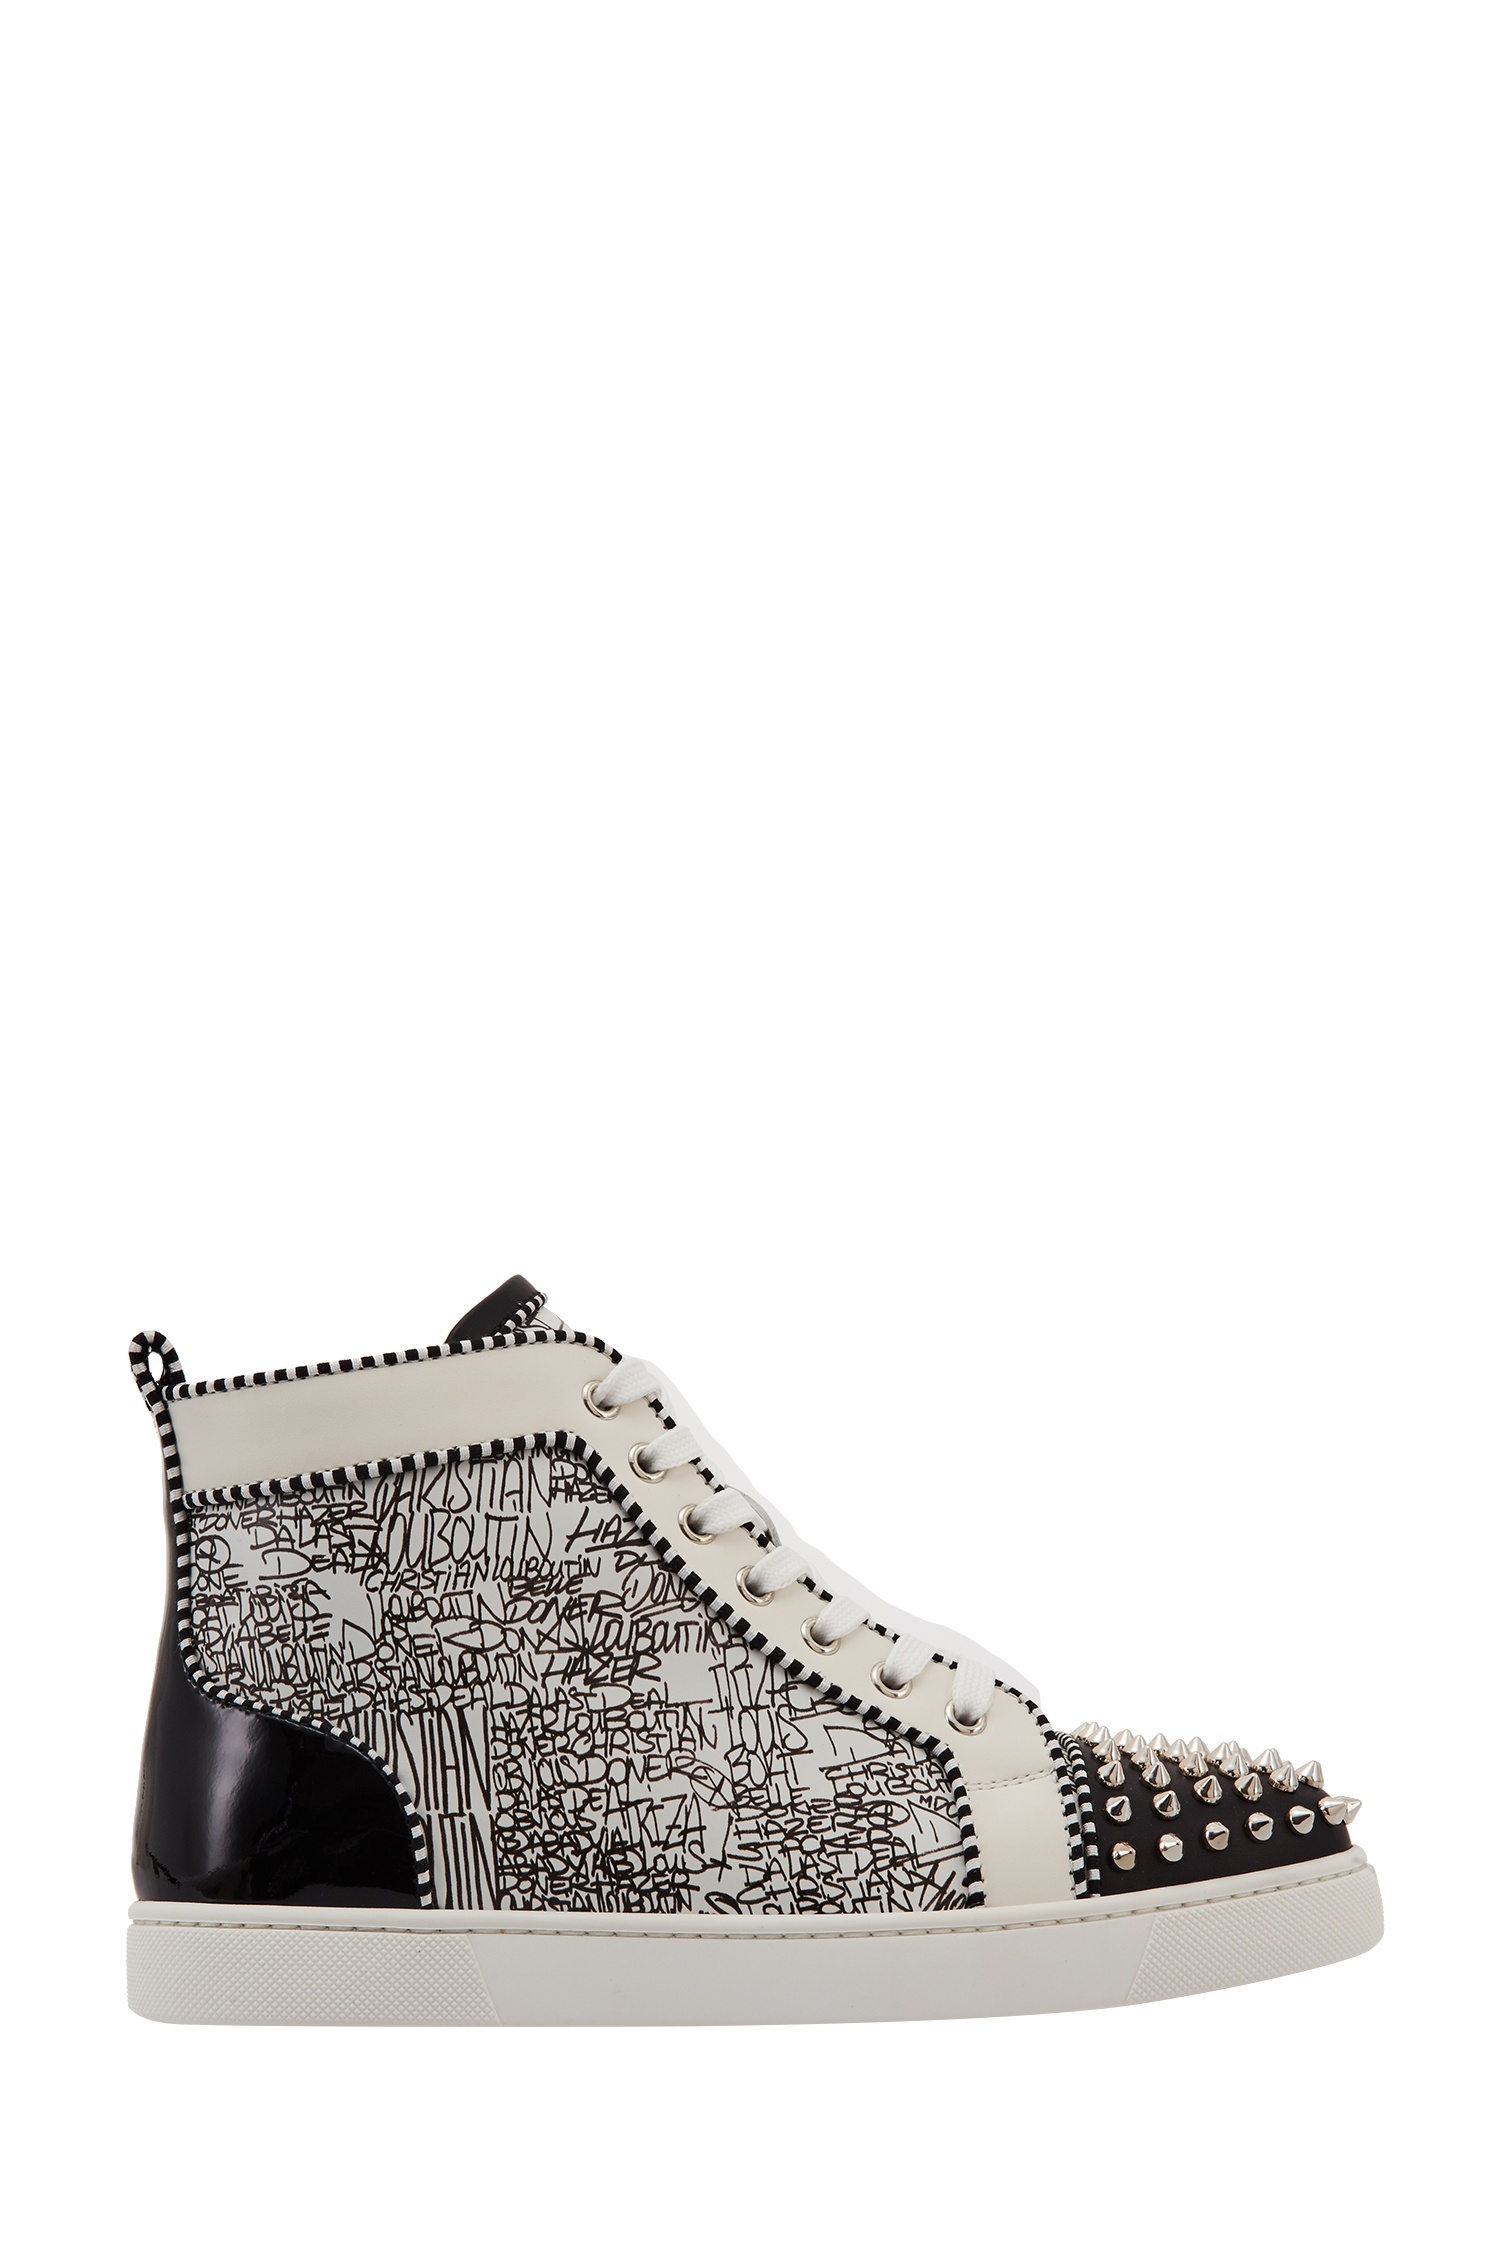 Комбинированные кроссовки Lou Spikes Woman Orlato Calf Caligraf Christian Louboutin (фото)